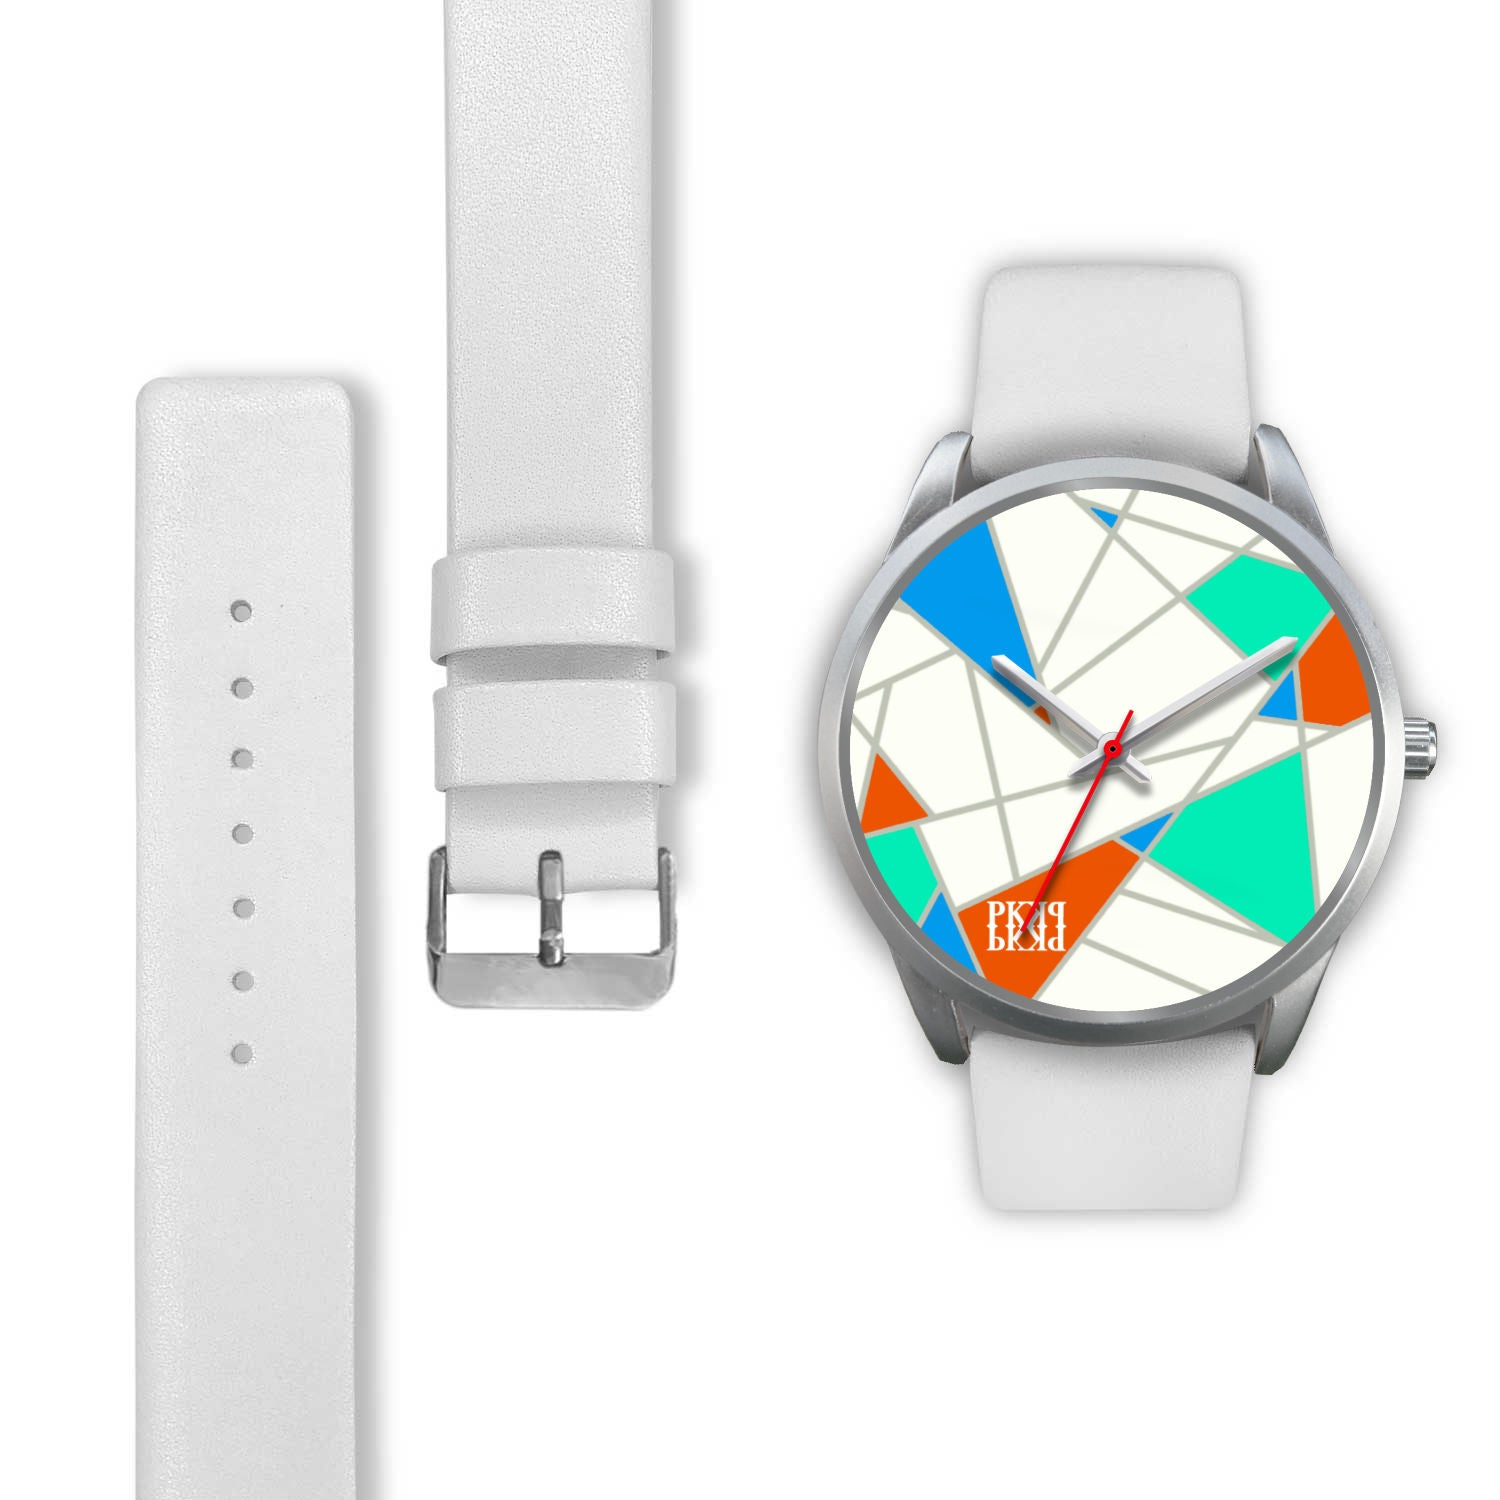 PK UNISEX WATCH - LEATHER/ METAL BANDS